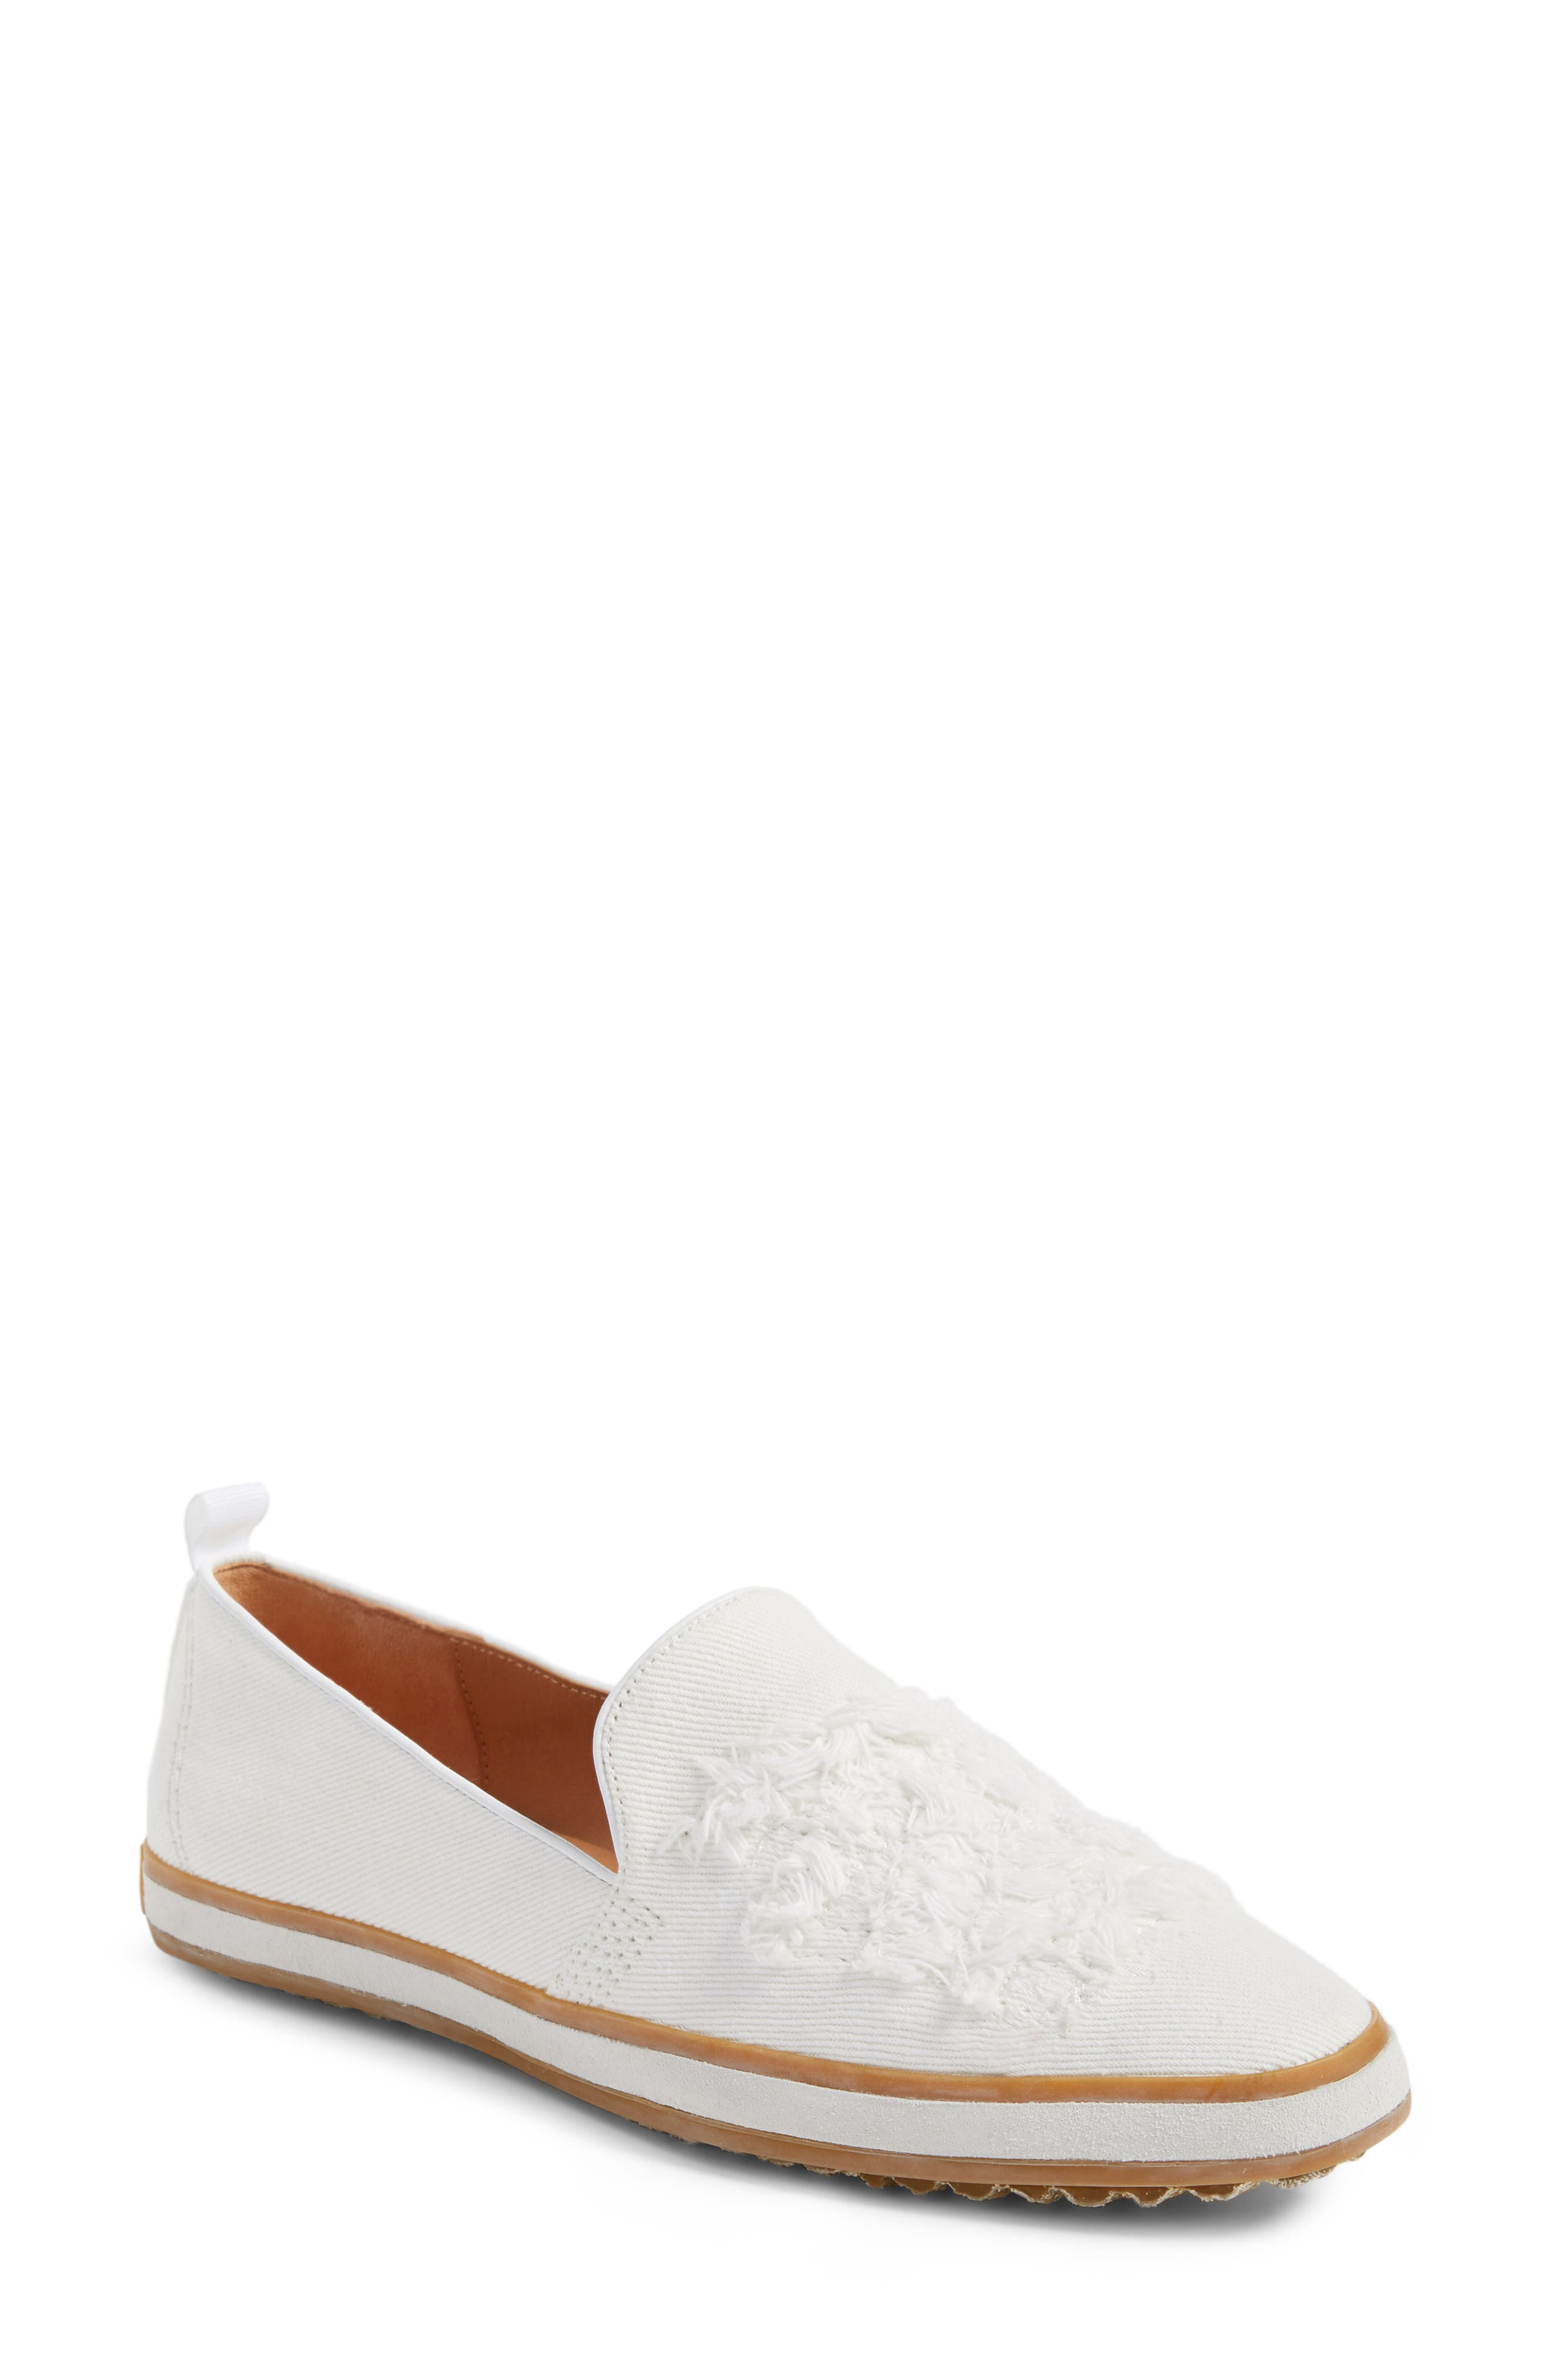 Sutton Loafer Flat,                             Main thumbnail 1, color,                             White